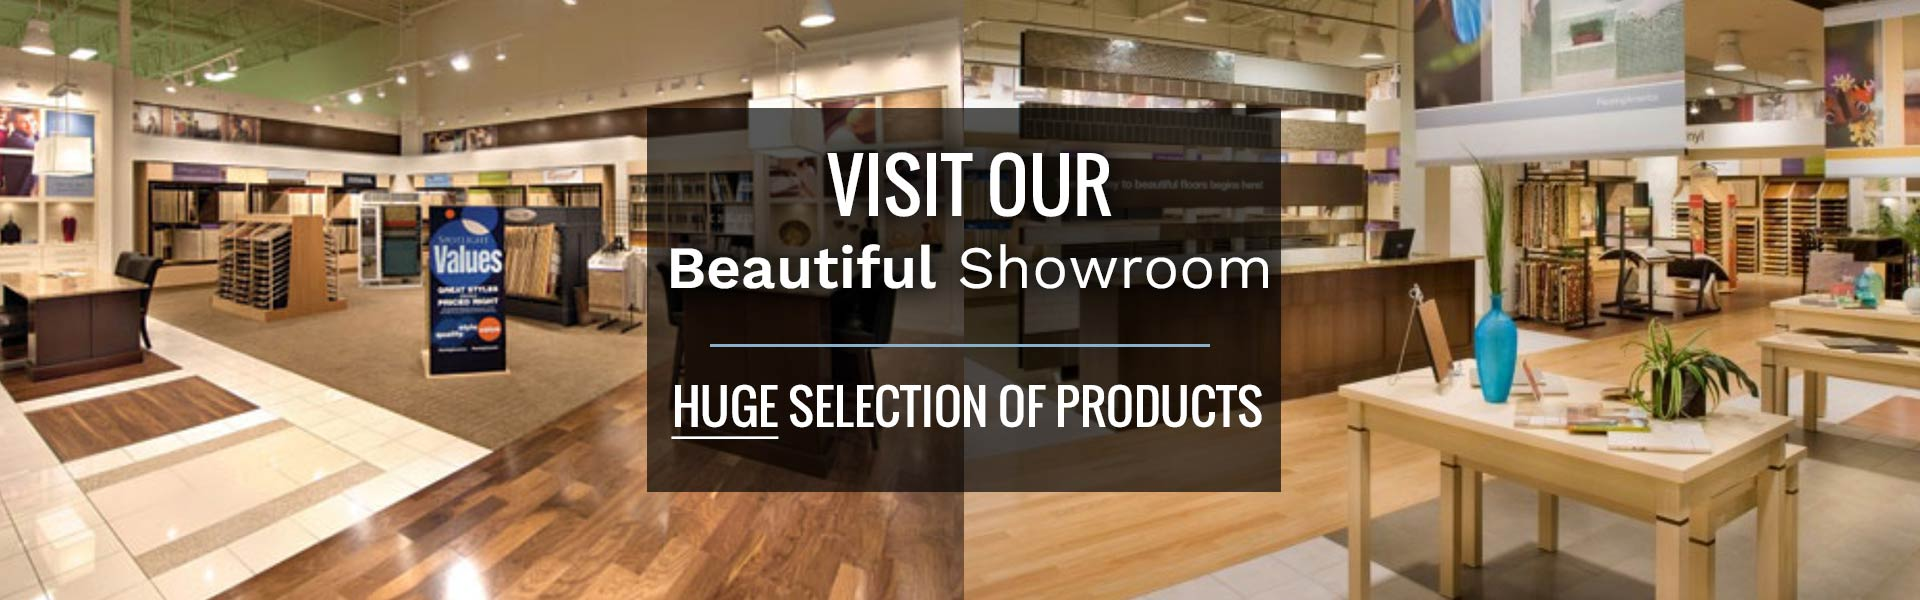 Flooring - LVP, Hardwood, Carpet, Ceramic Tile, Area Rugs